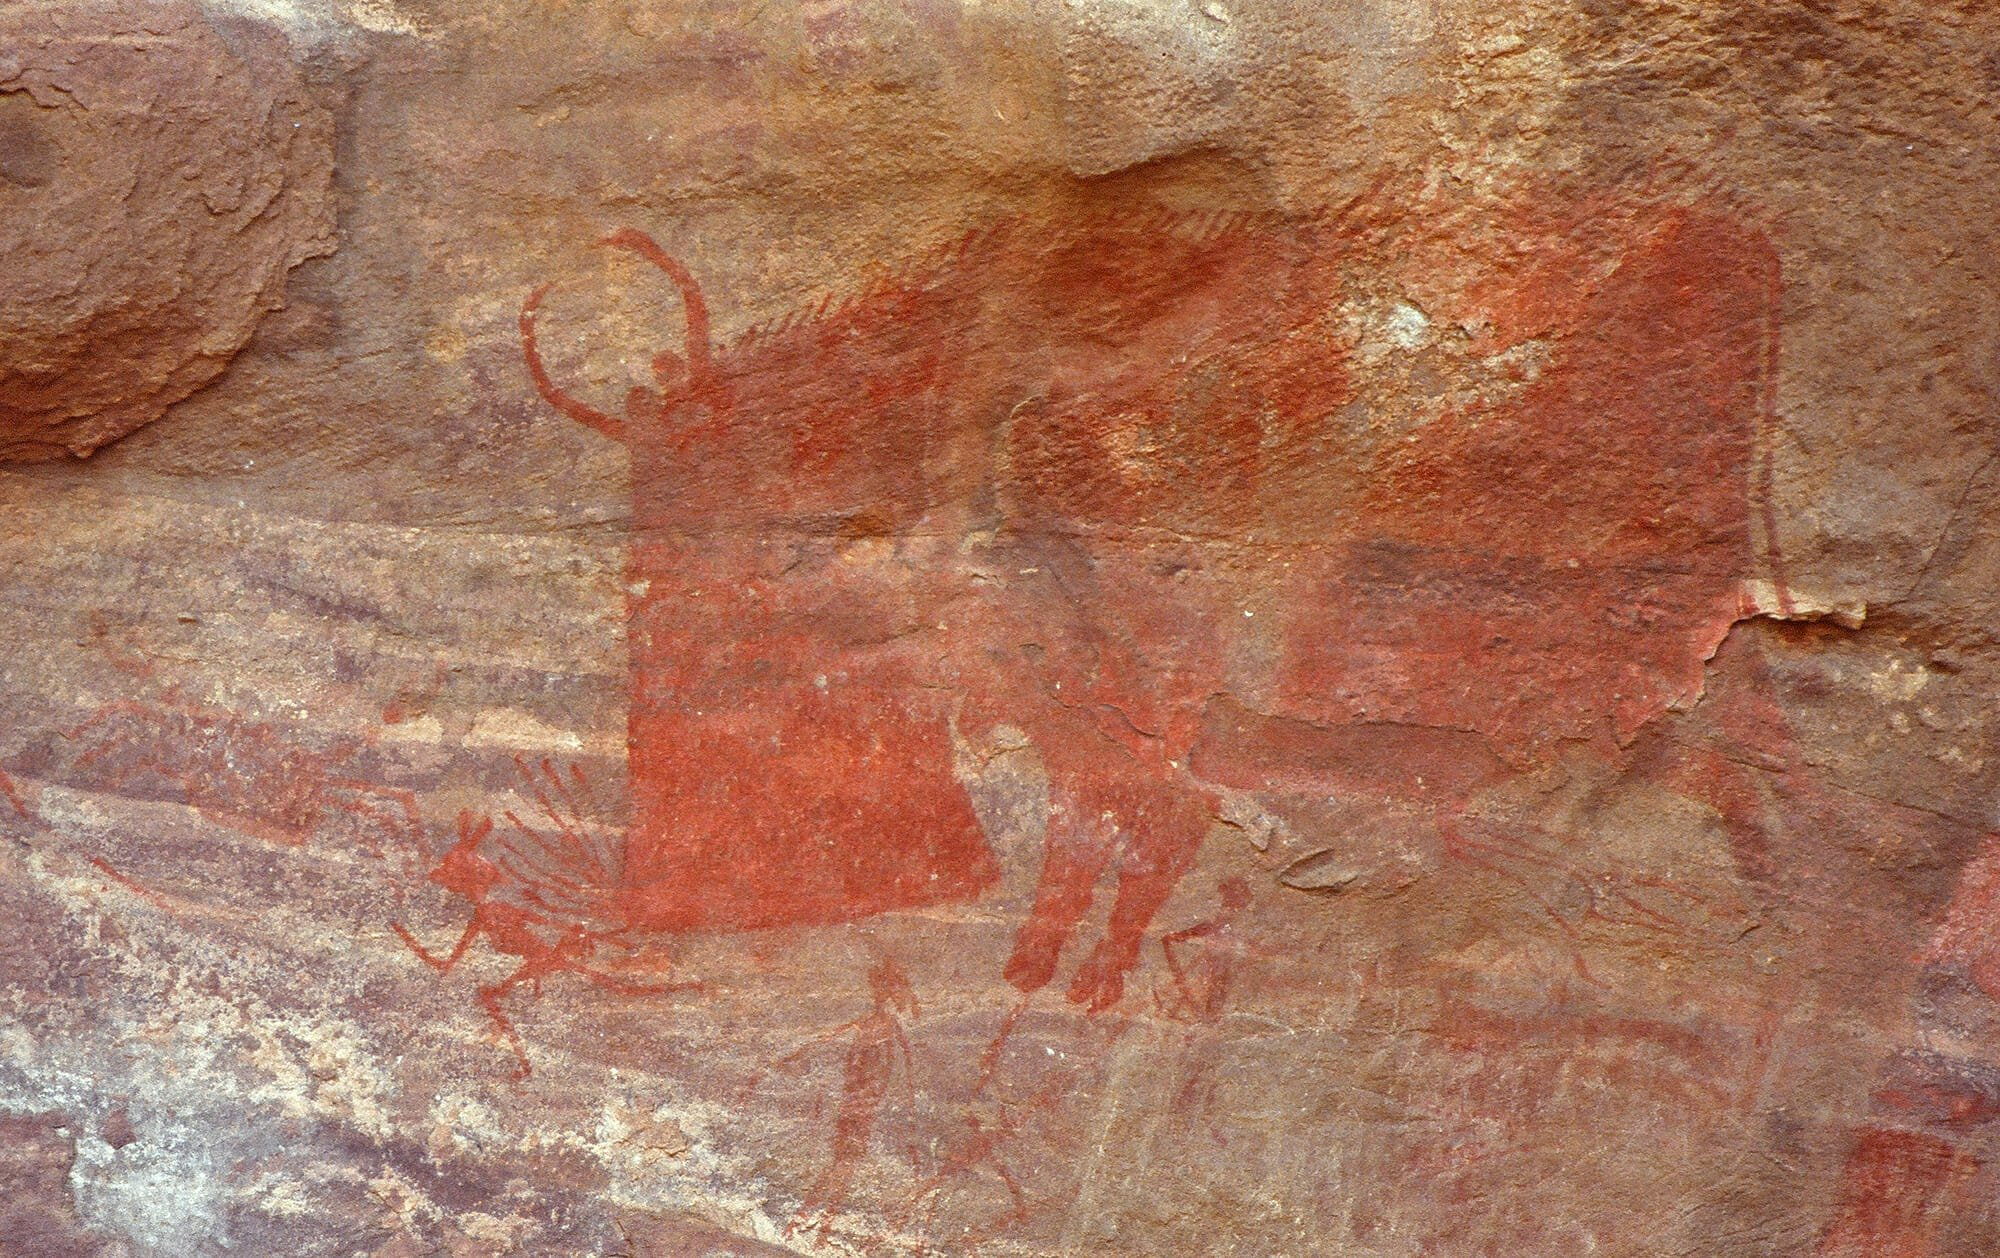 Drawing on Bimbetka Cave